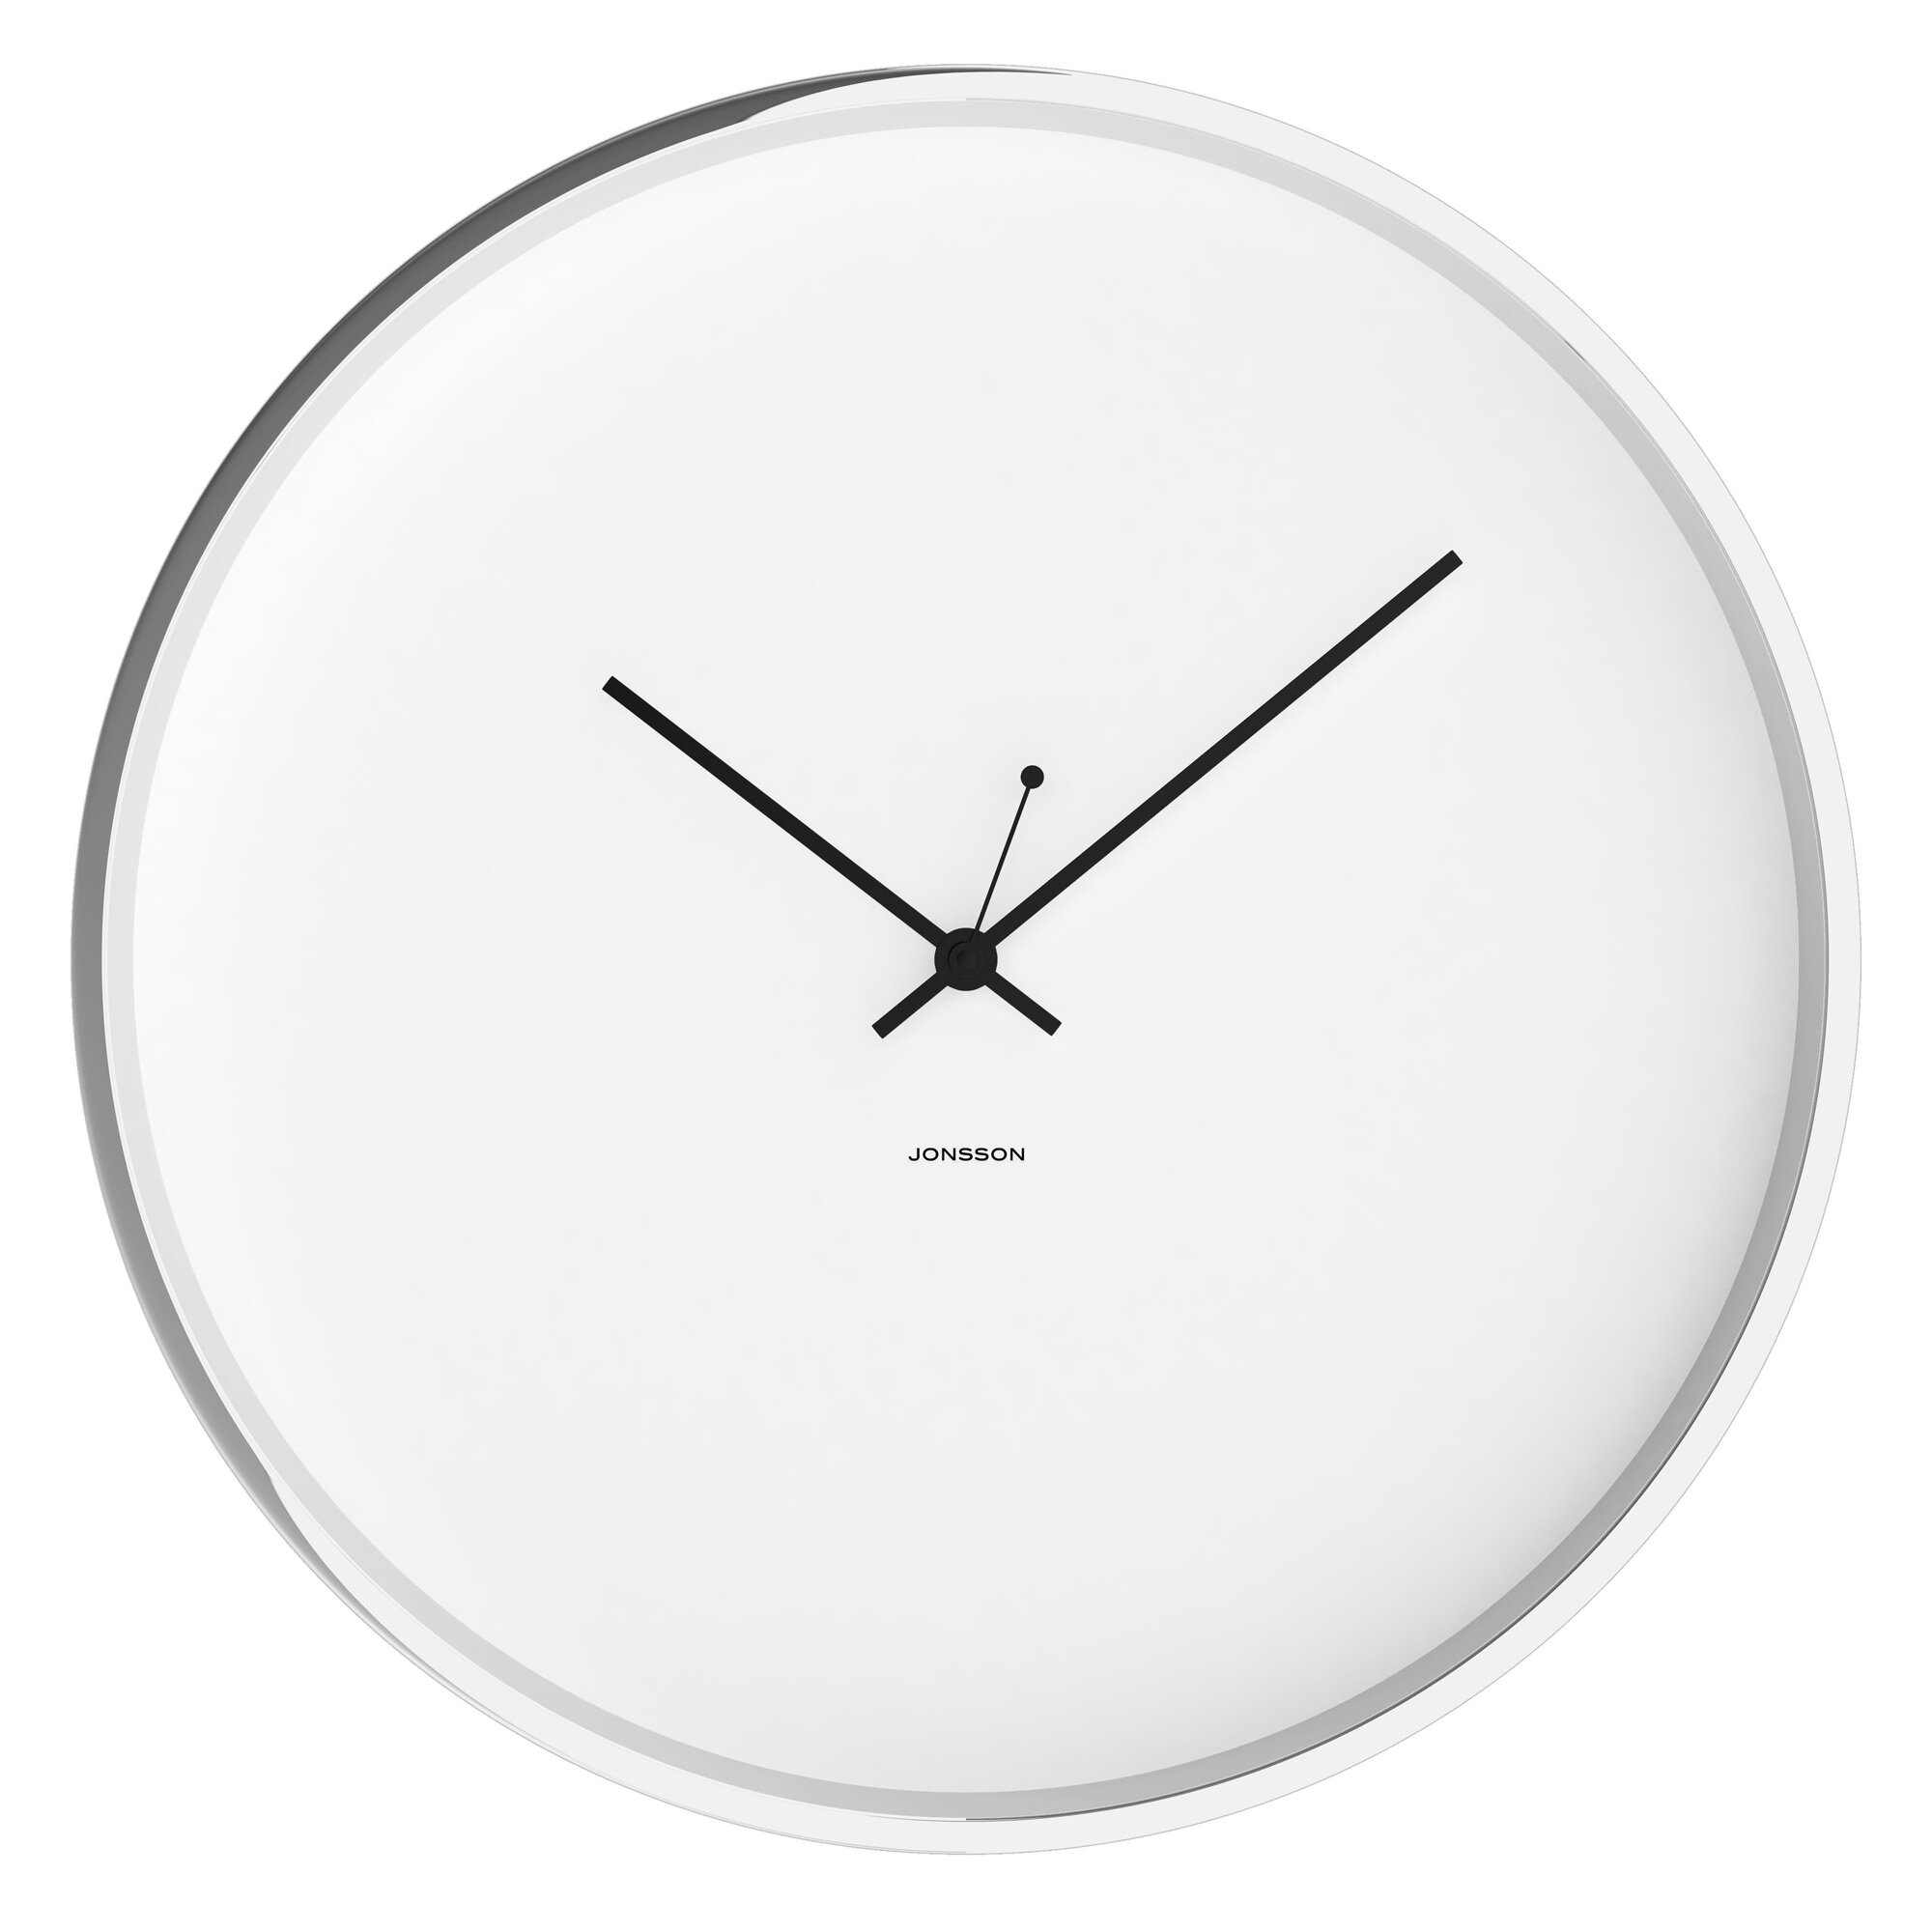 Jonsson Timeware Artus Wall Clock Reviews